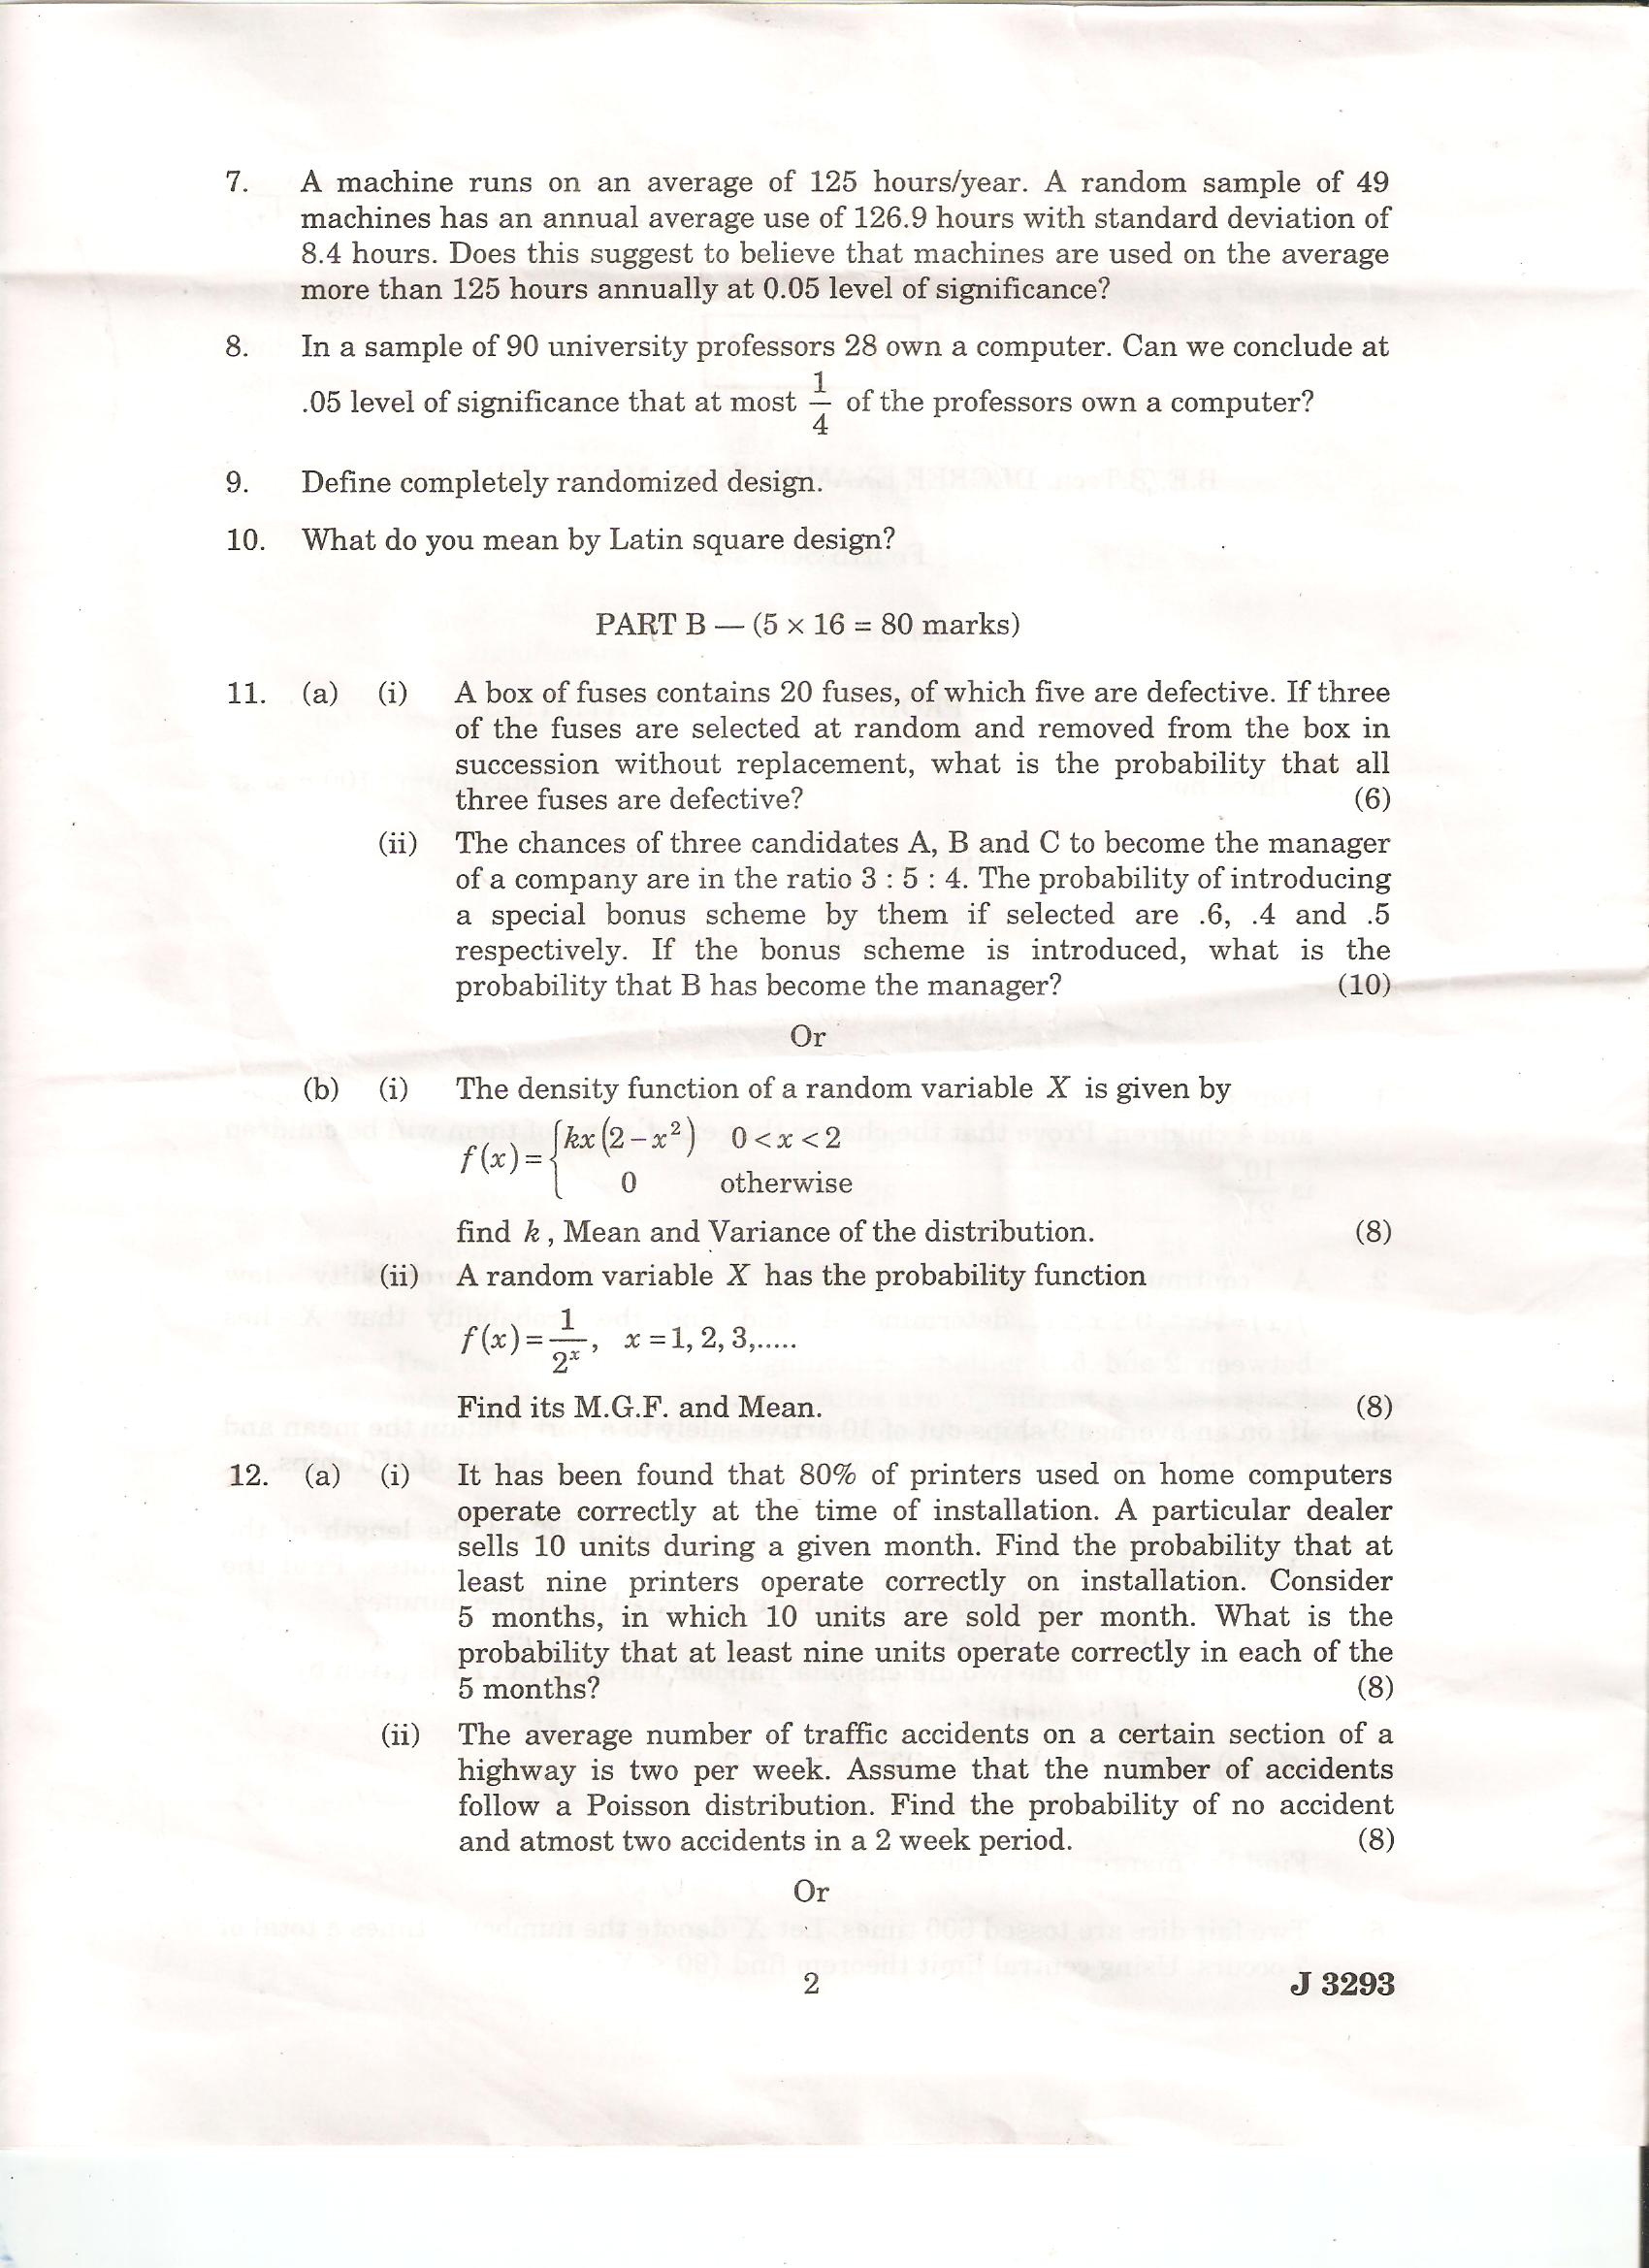 total quality management question papers-2010 Download vtu total quality management of 7th semester mechanical  engineering with subject code 10me758 2010 scheme question papers.